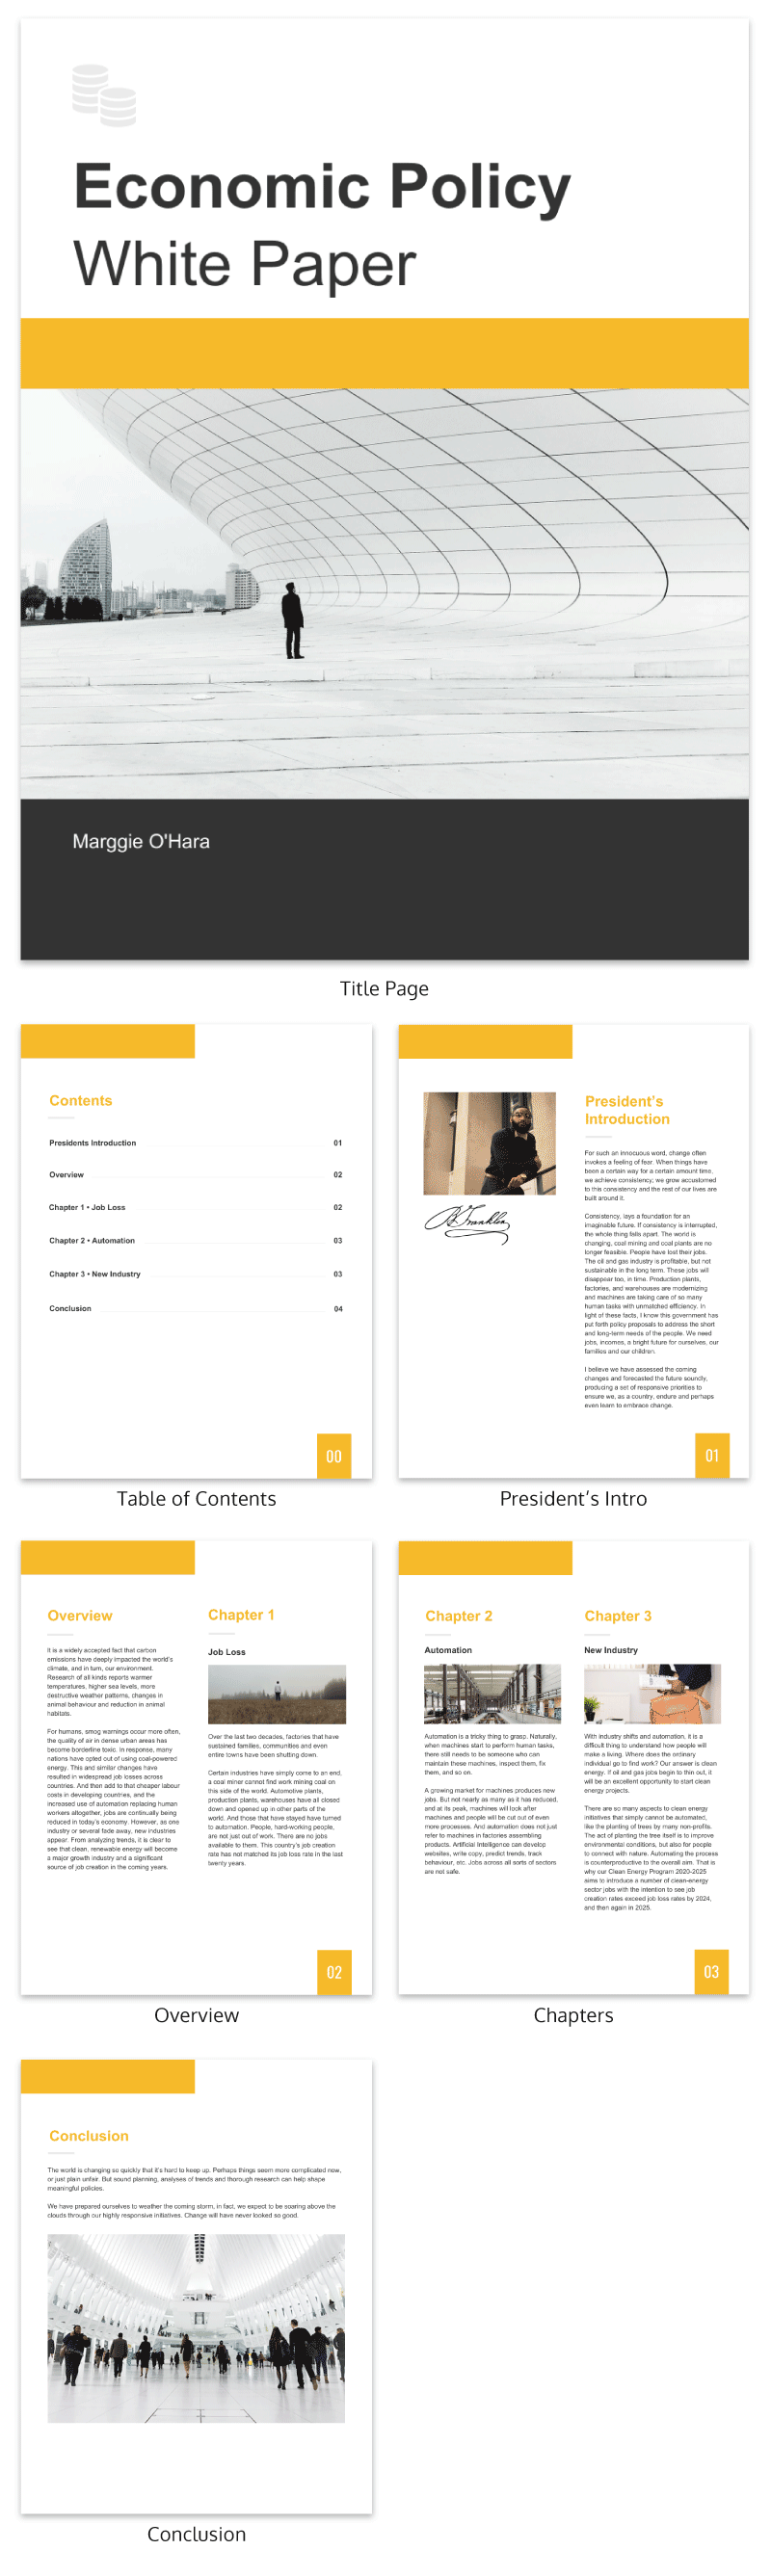 20+ Page-Turning White Paper Examples [Design Guide + White Paper